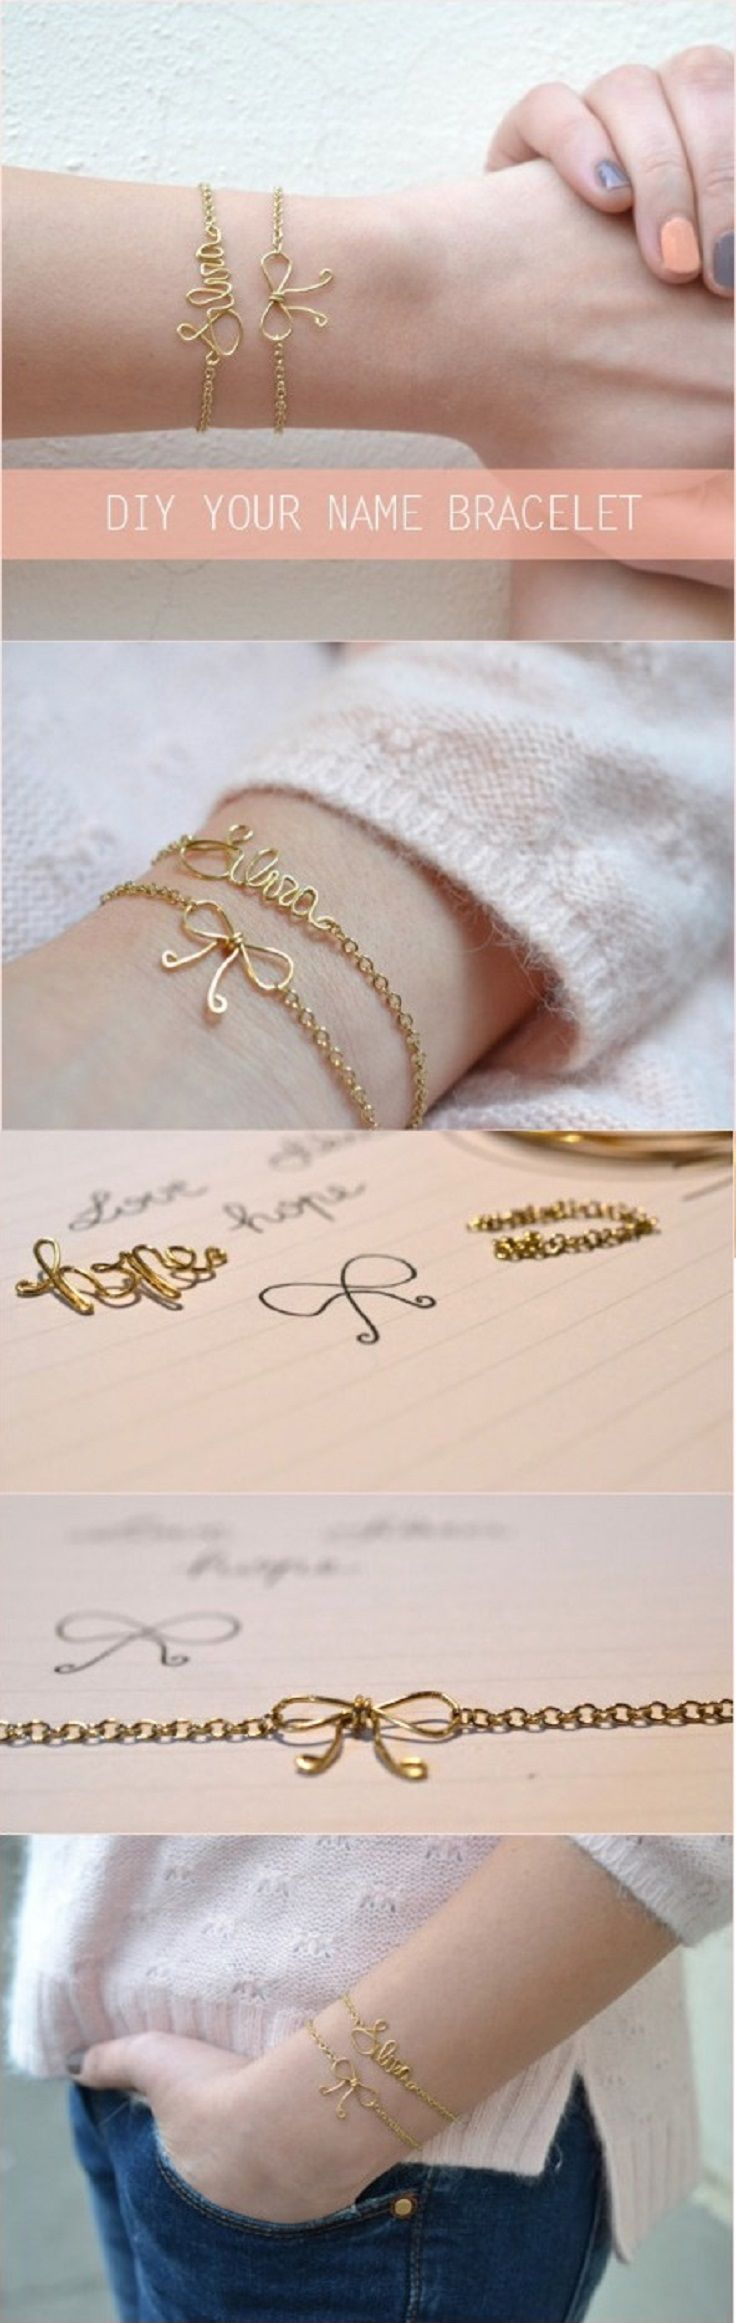 Diy bracelets stylish exclusive photo